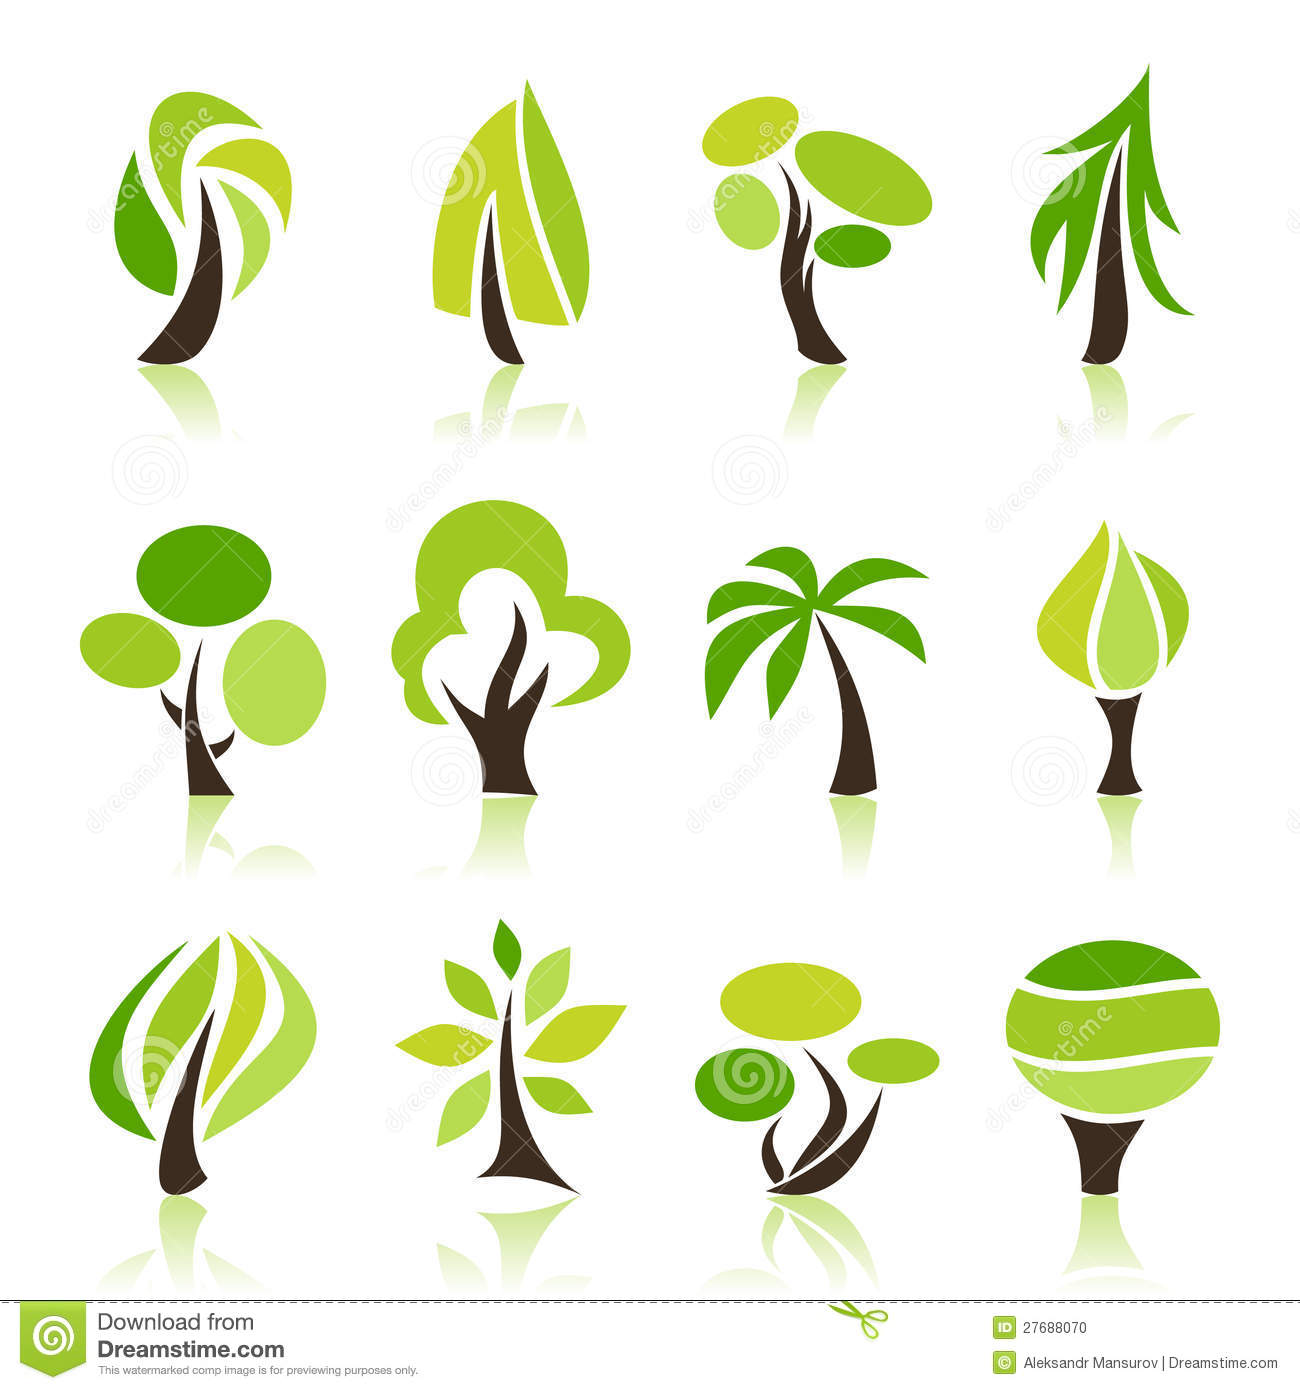 Set of icons of trees. A vector illustration.